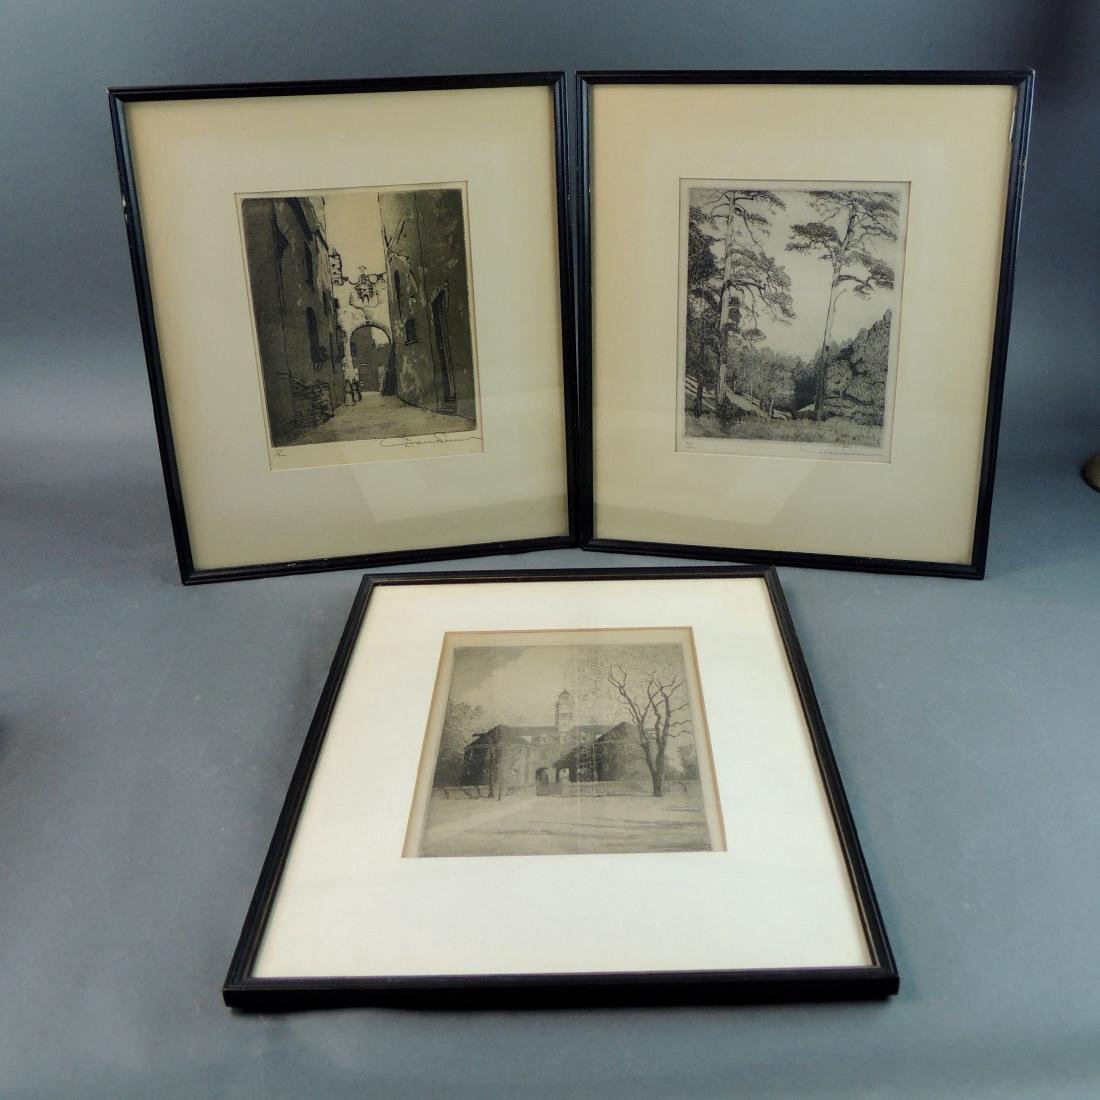 Don Swann/Limited Edition Signed & Numbered Etchings